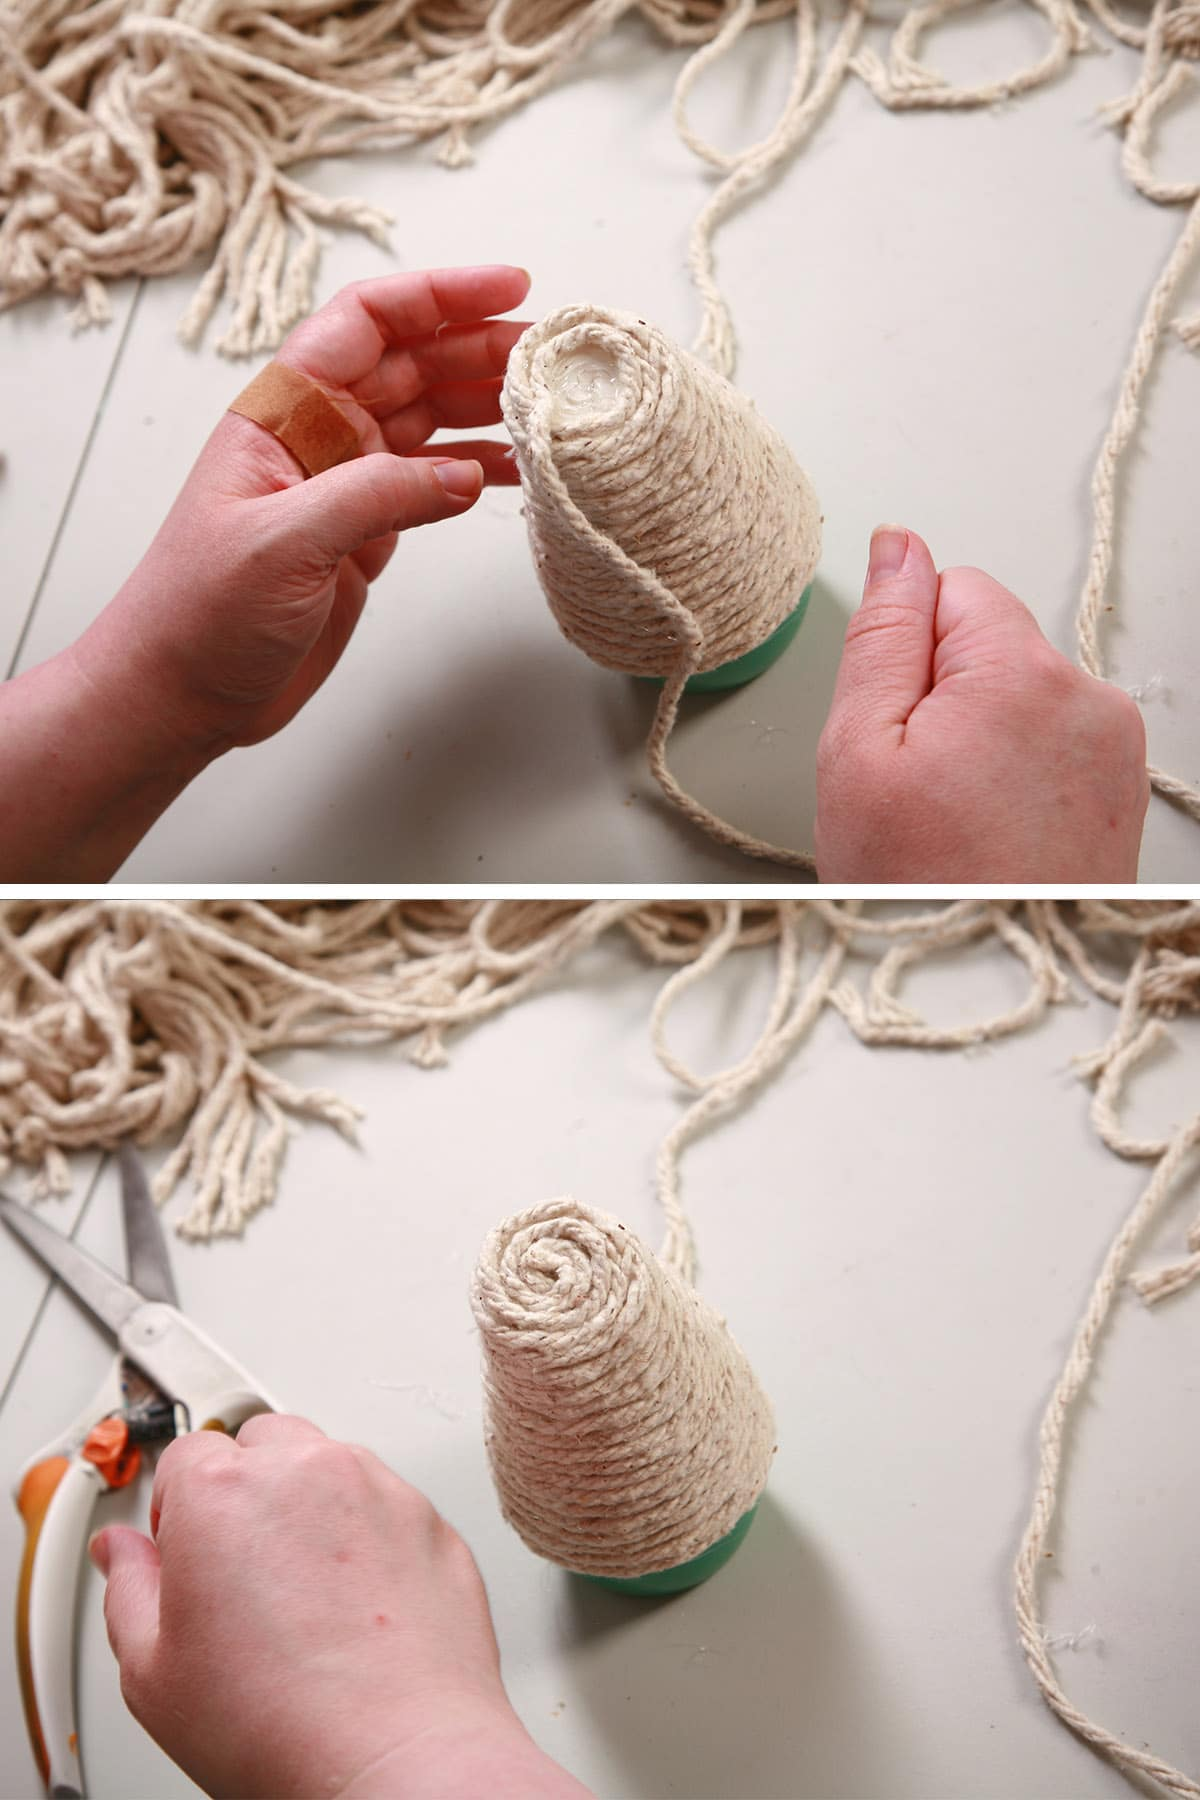 Yarn being coiled and glued into place on top of the air freshener.